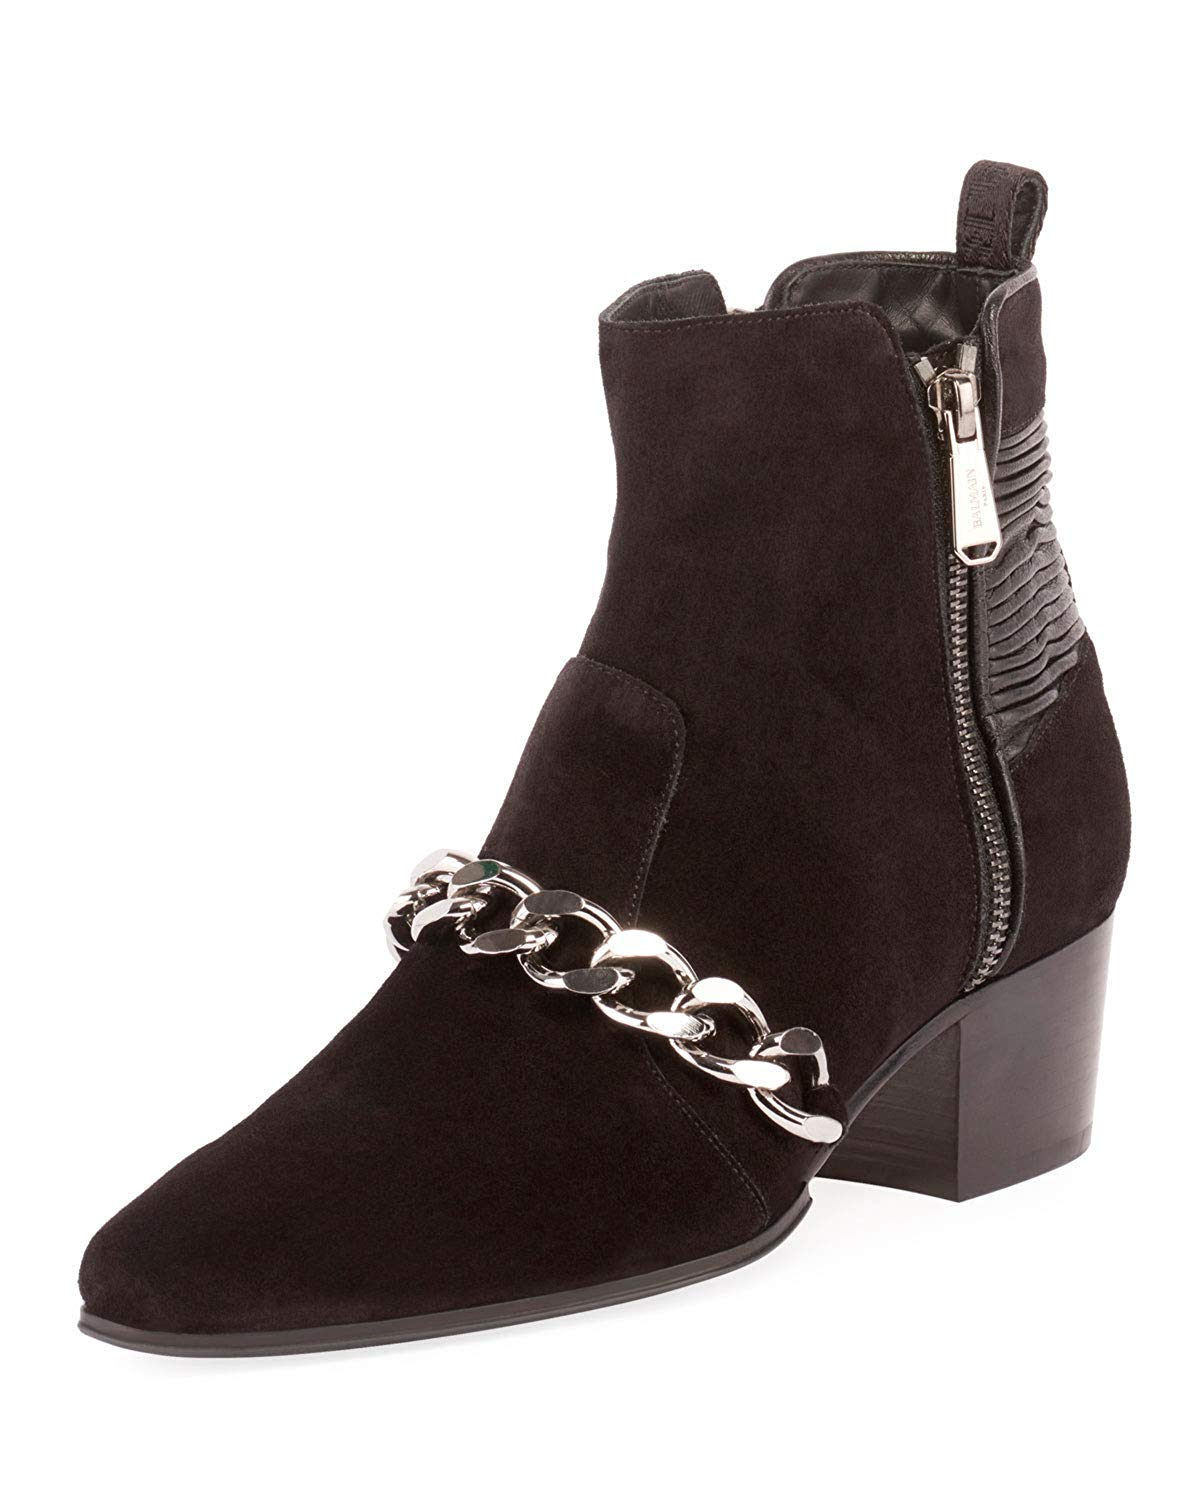 Balmain Black Suede Leather Ella Boots Chain Trim 01